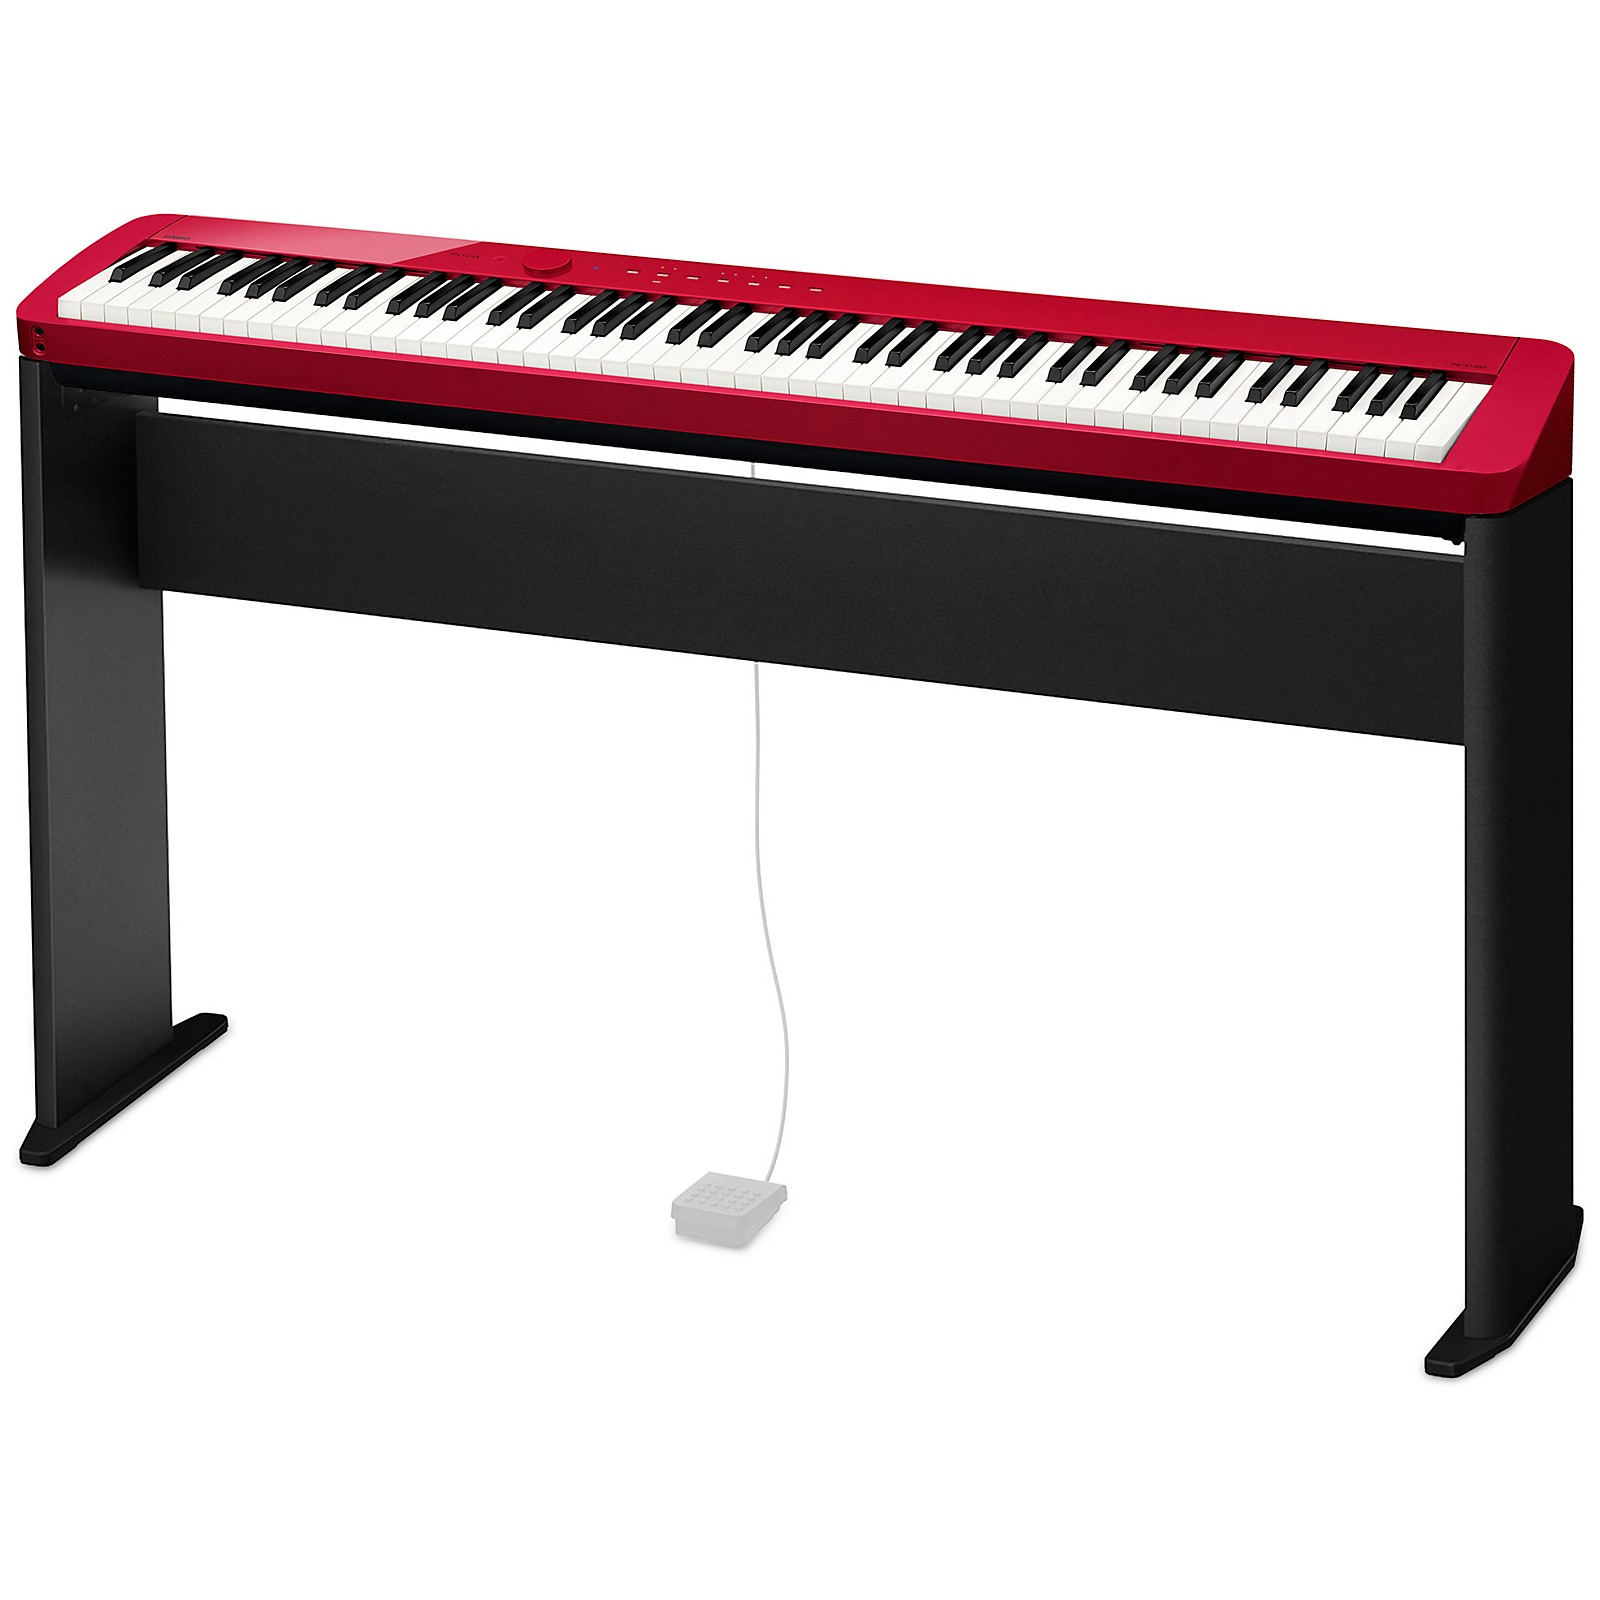 Casio Casio PX-S1000 Privia Digital Piano, Red, With CS68 Stand